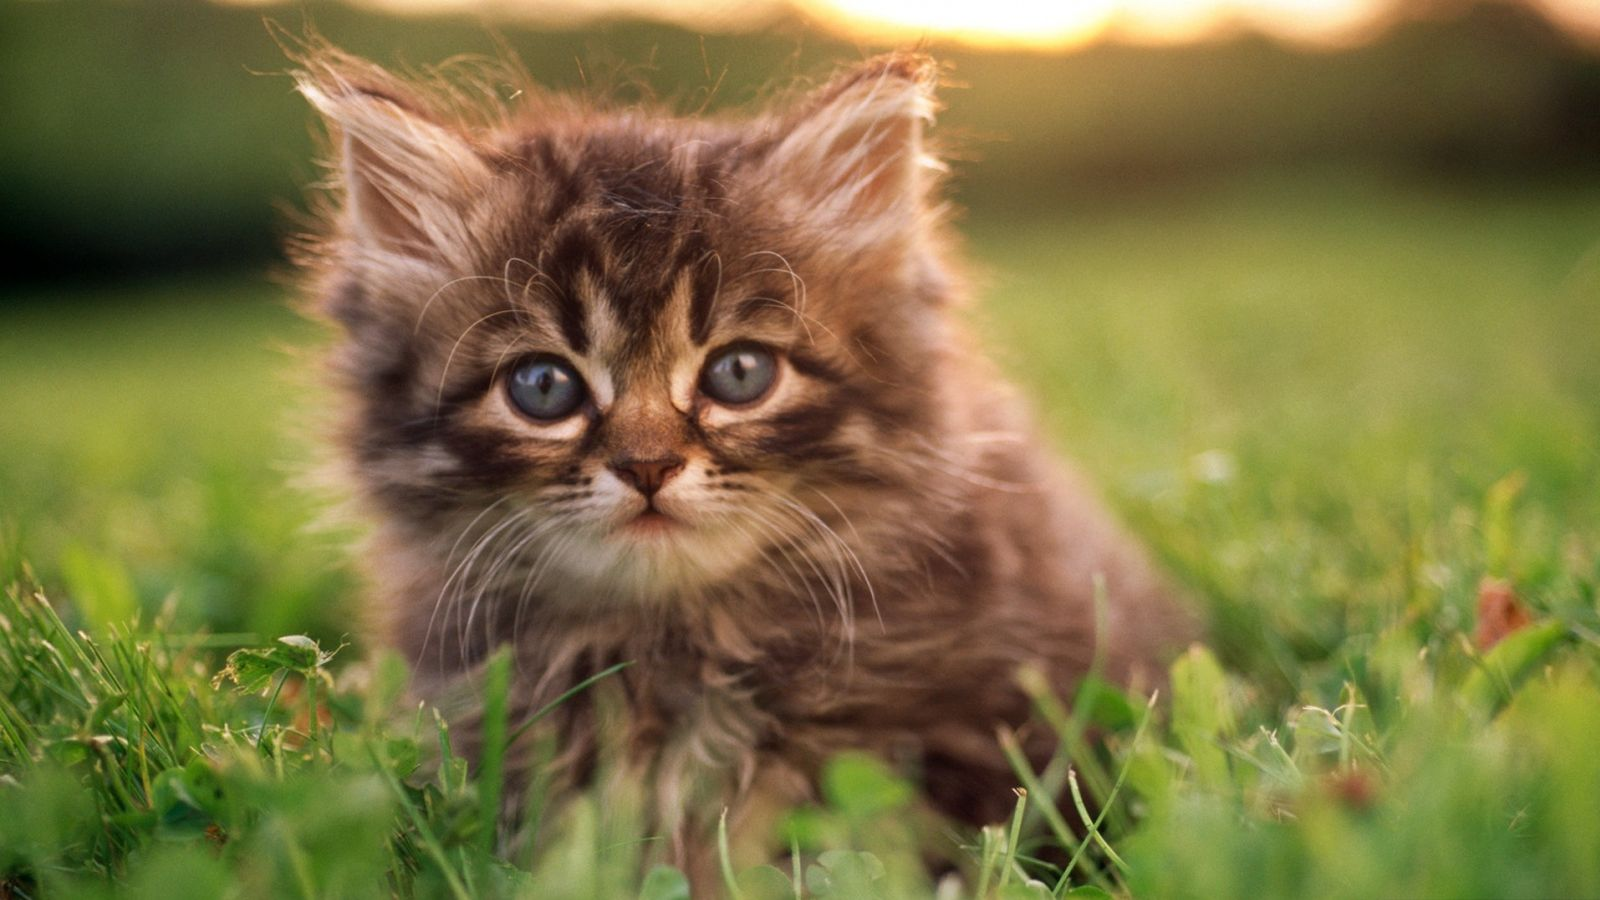 kitten_portrait-wallpaper-1600x900.jpg